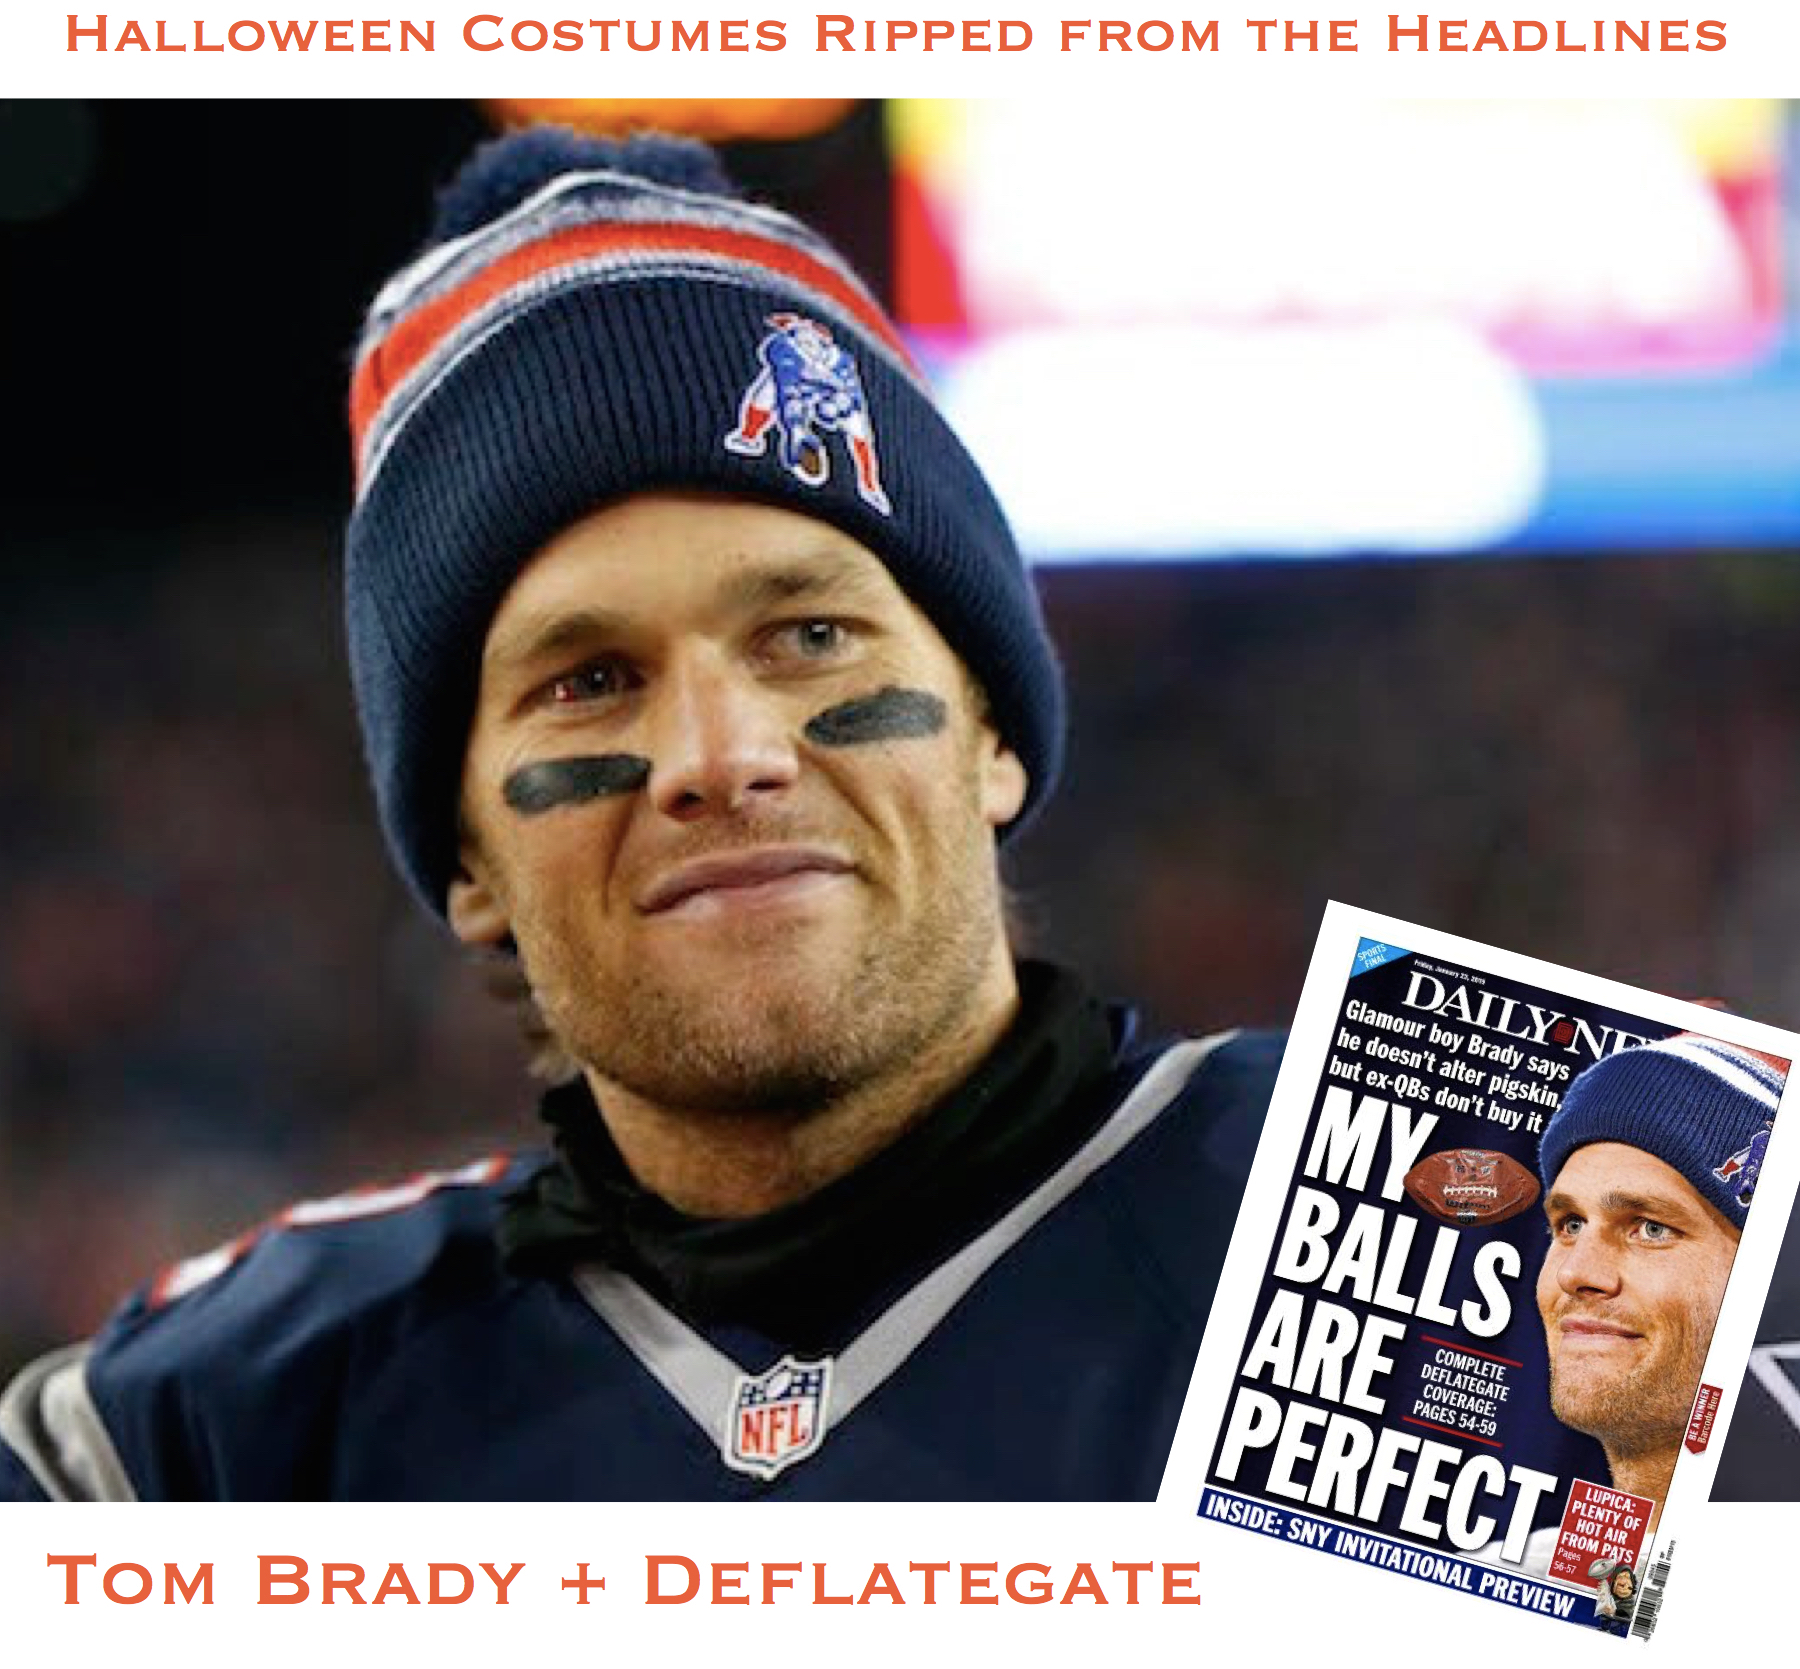 Halloween Costumes Ripped from the Headlines Tom Brady Deflategate